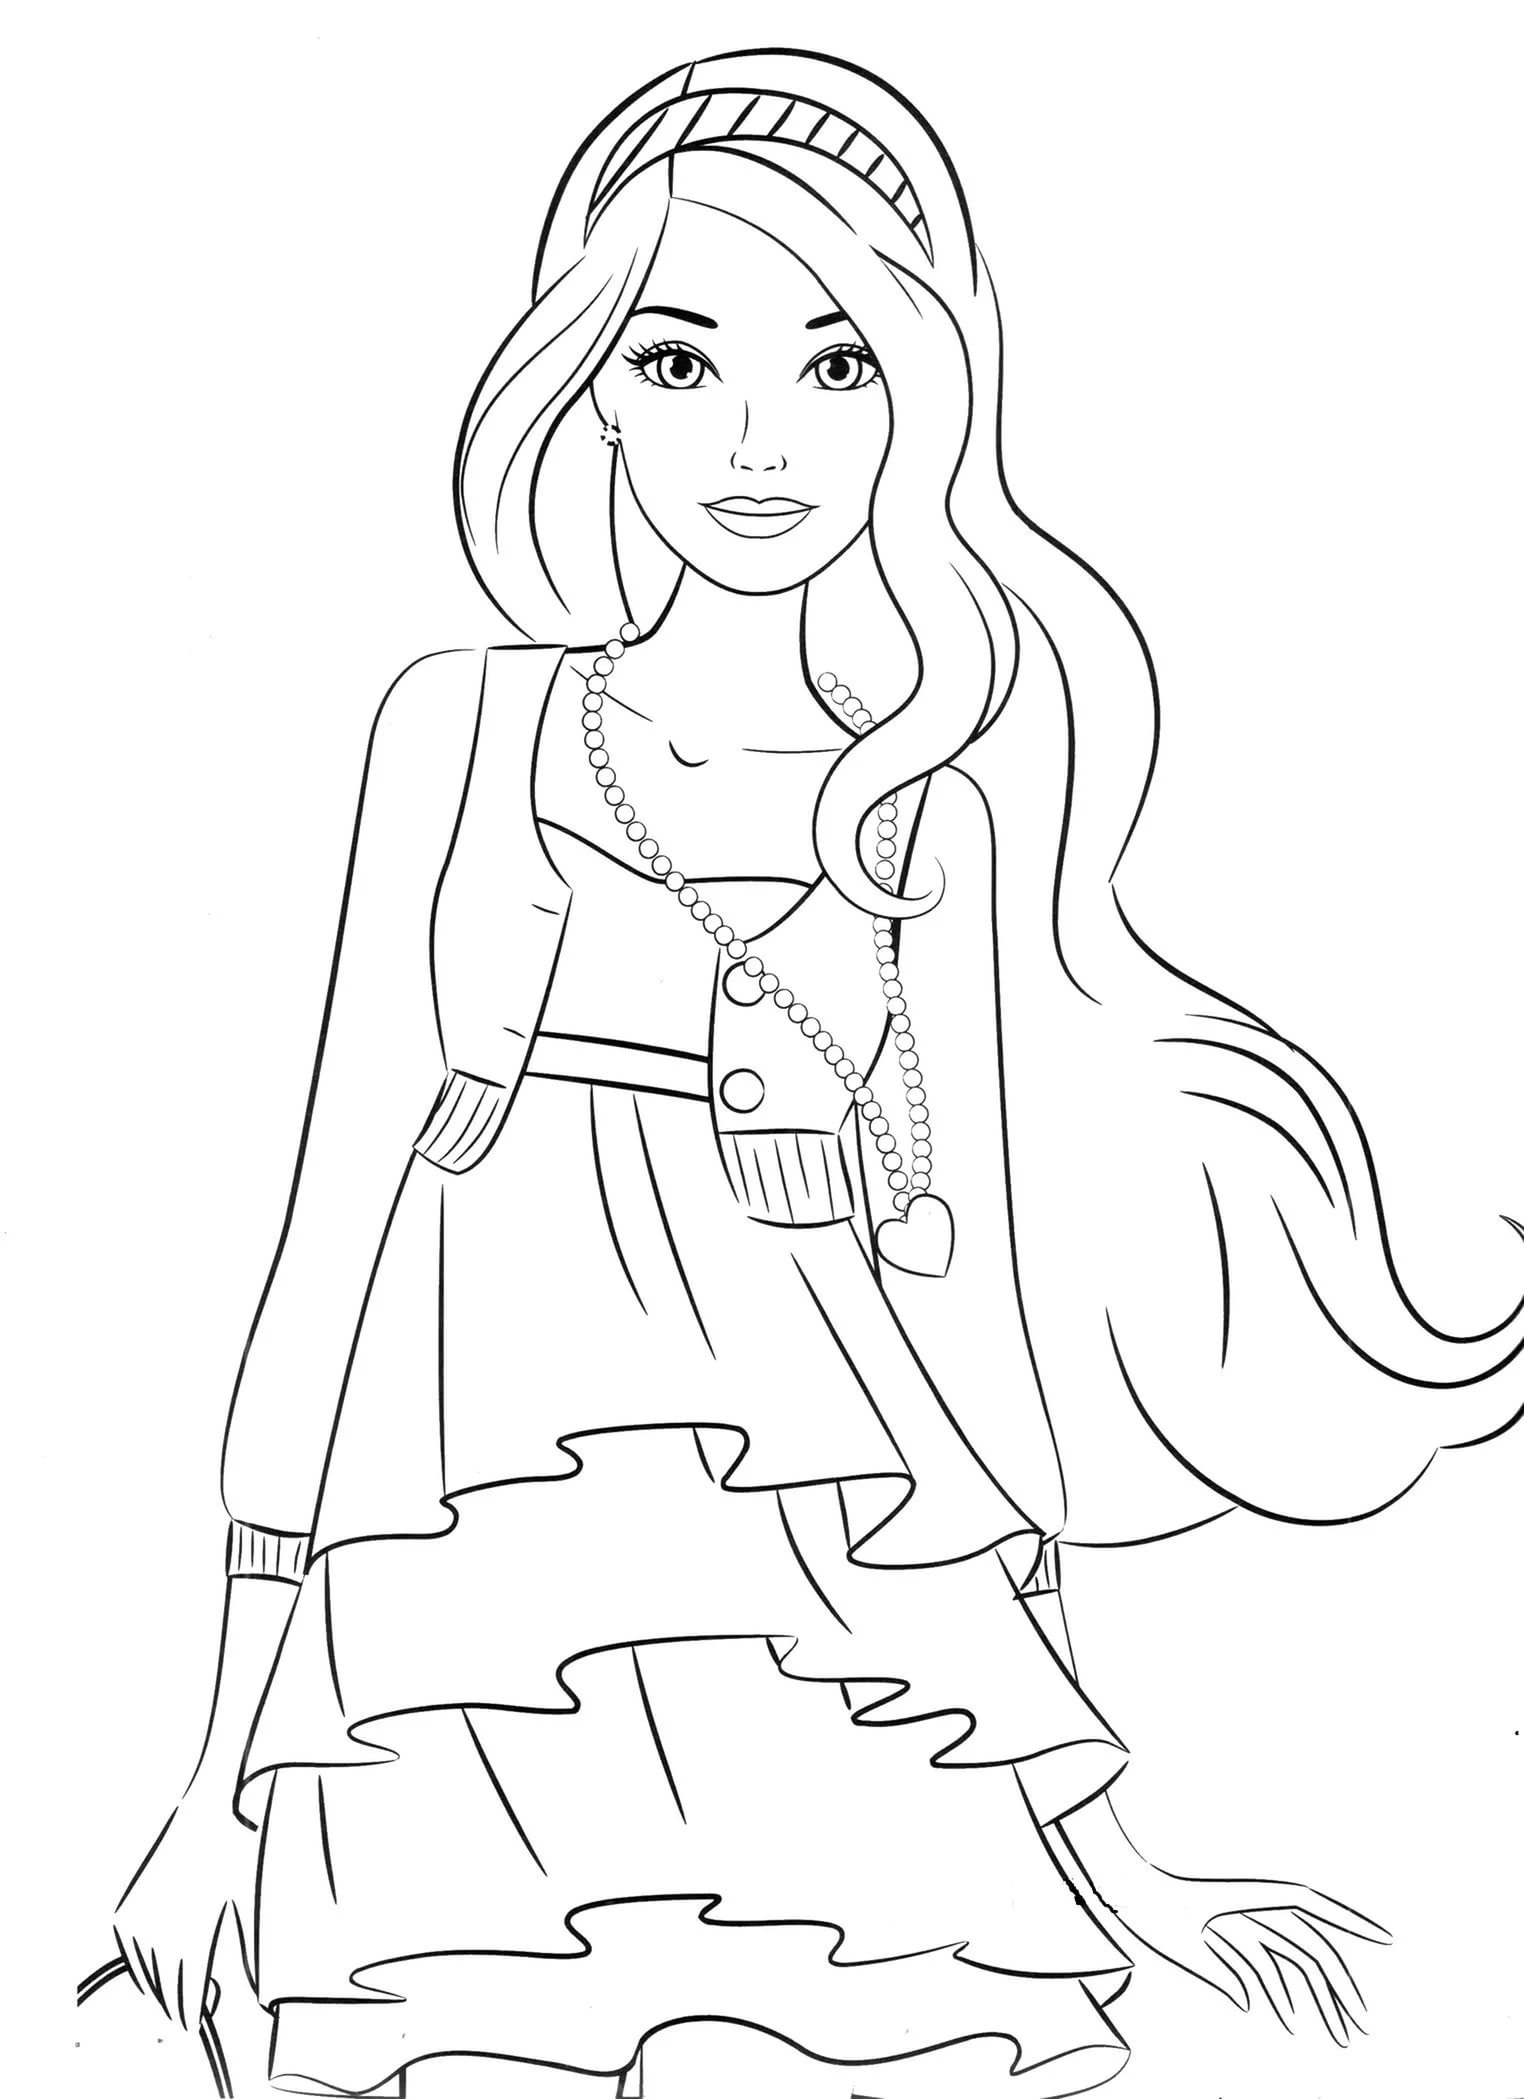 Coloring Pages For 8 9 10 Year Old Girls To Download And Coloring Pages For 10 Year Olds